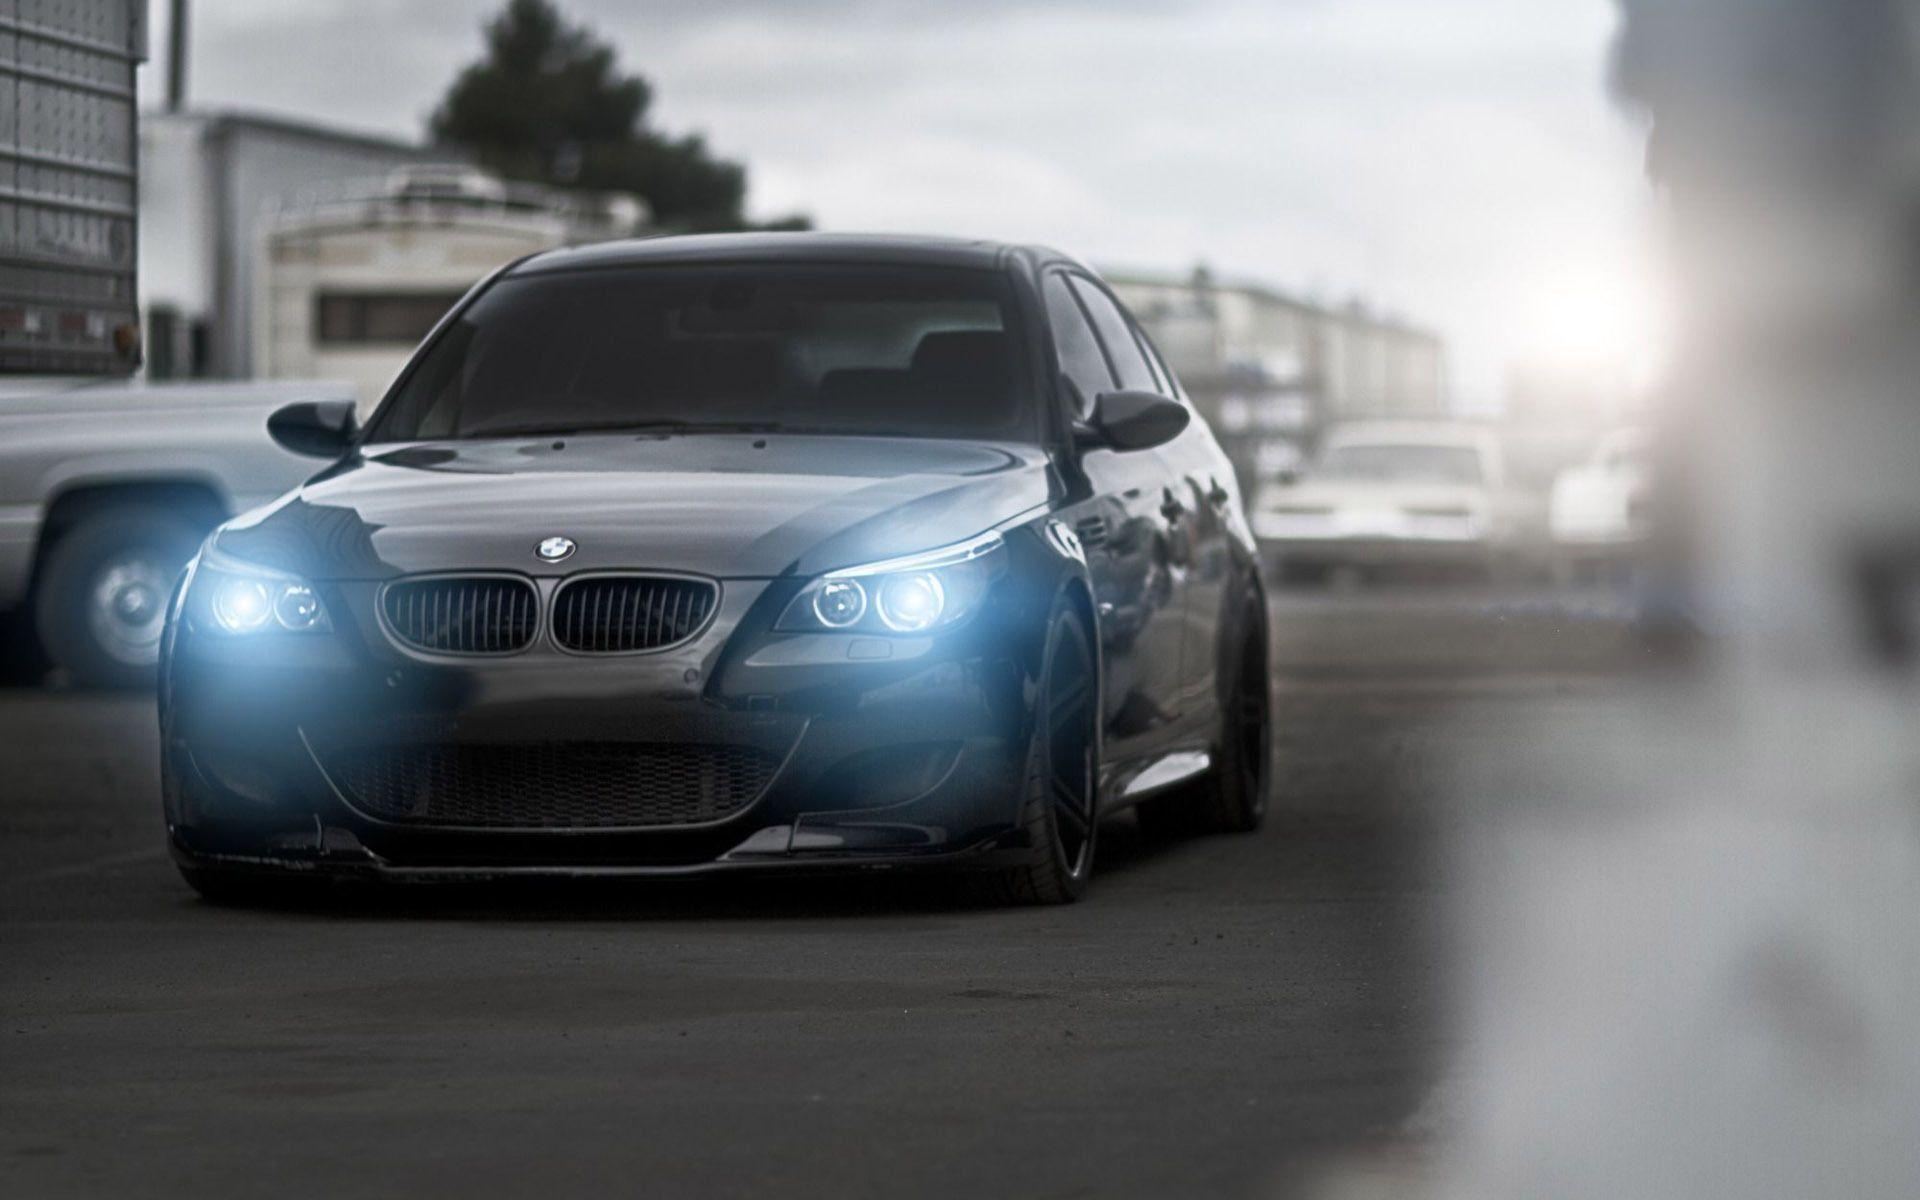 Bmw M5 Wallpapers - Full HD wallpaper search